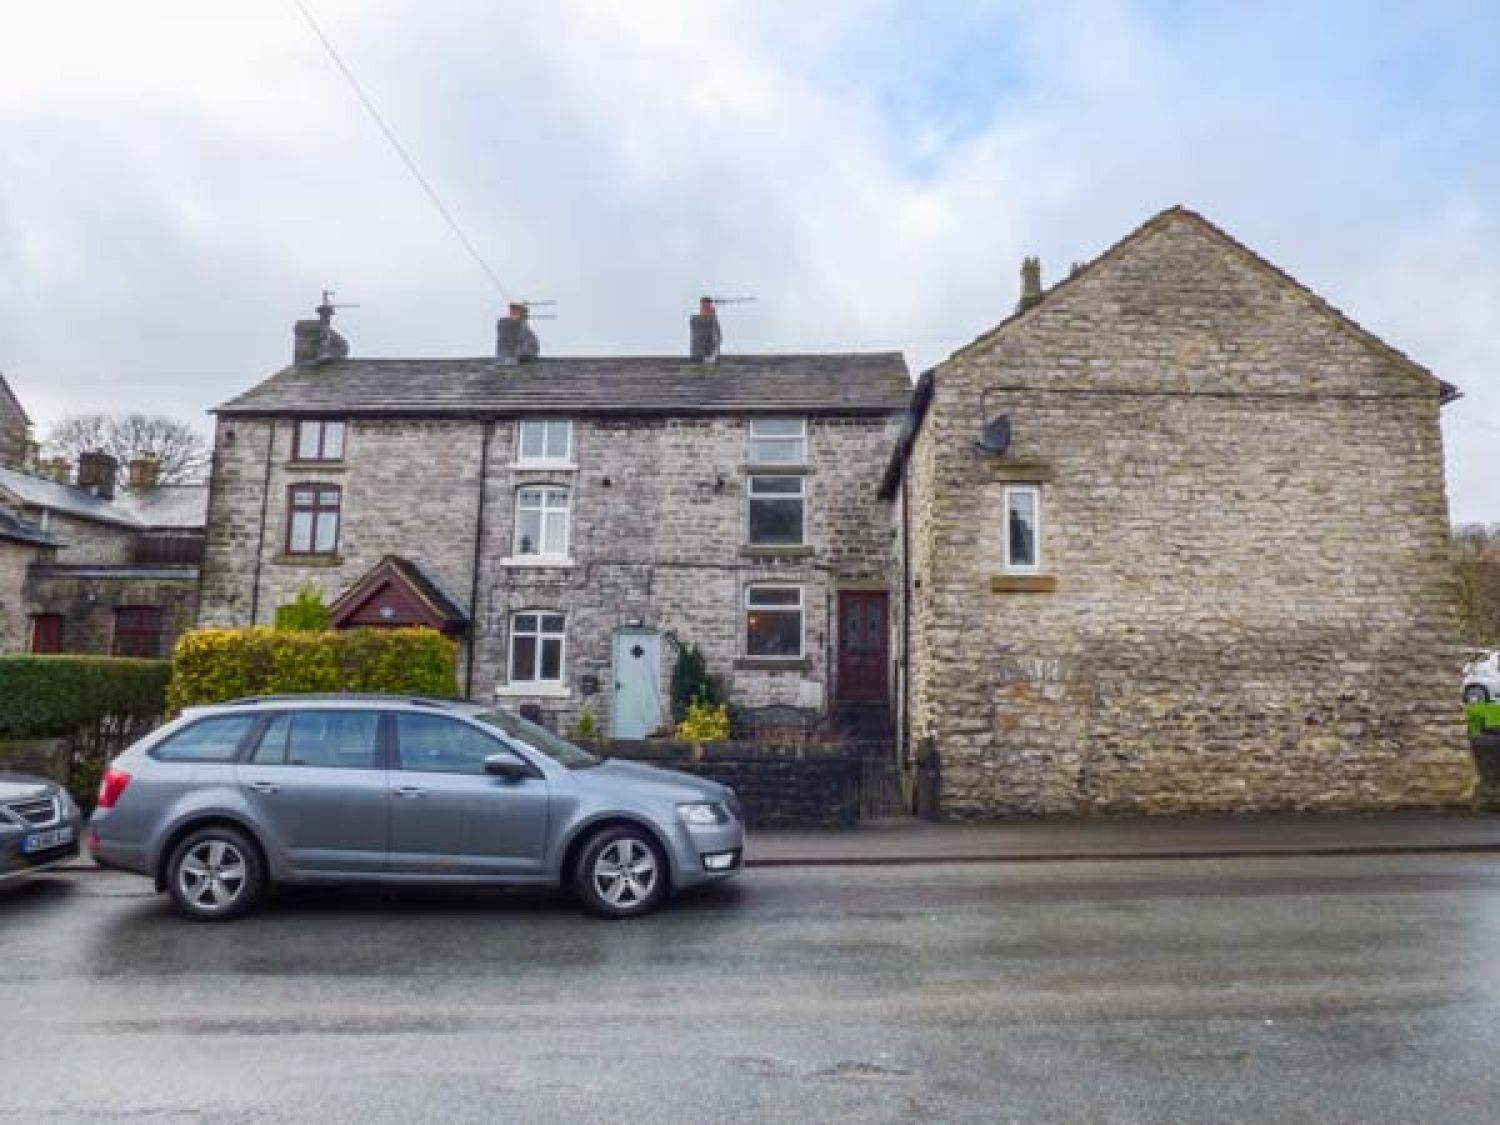 12 Buxton Road - Peak District - 952123 - photo 1